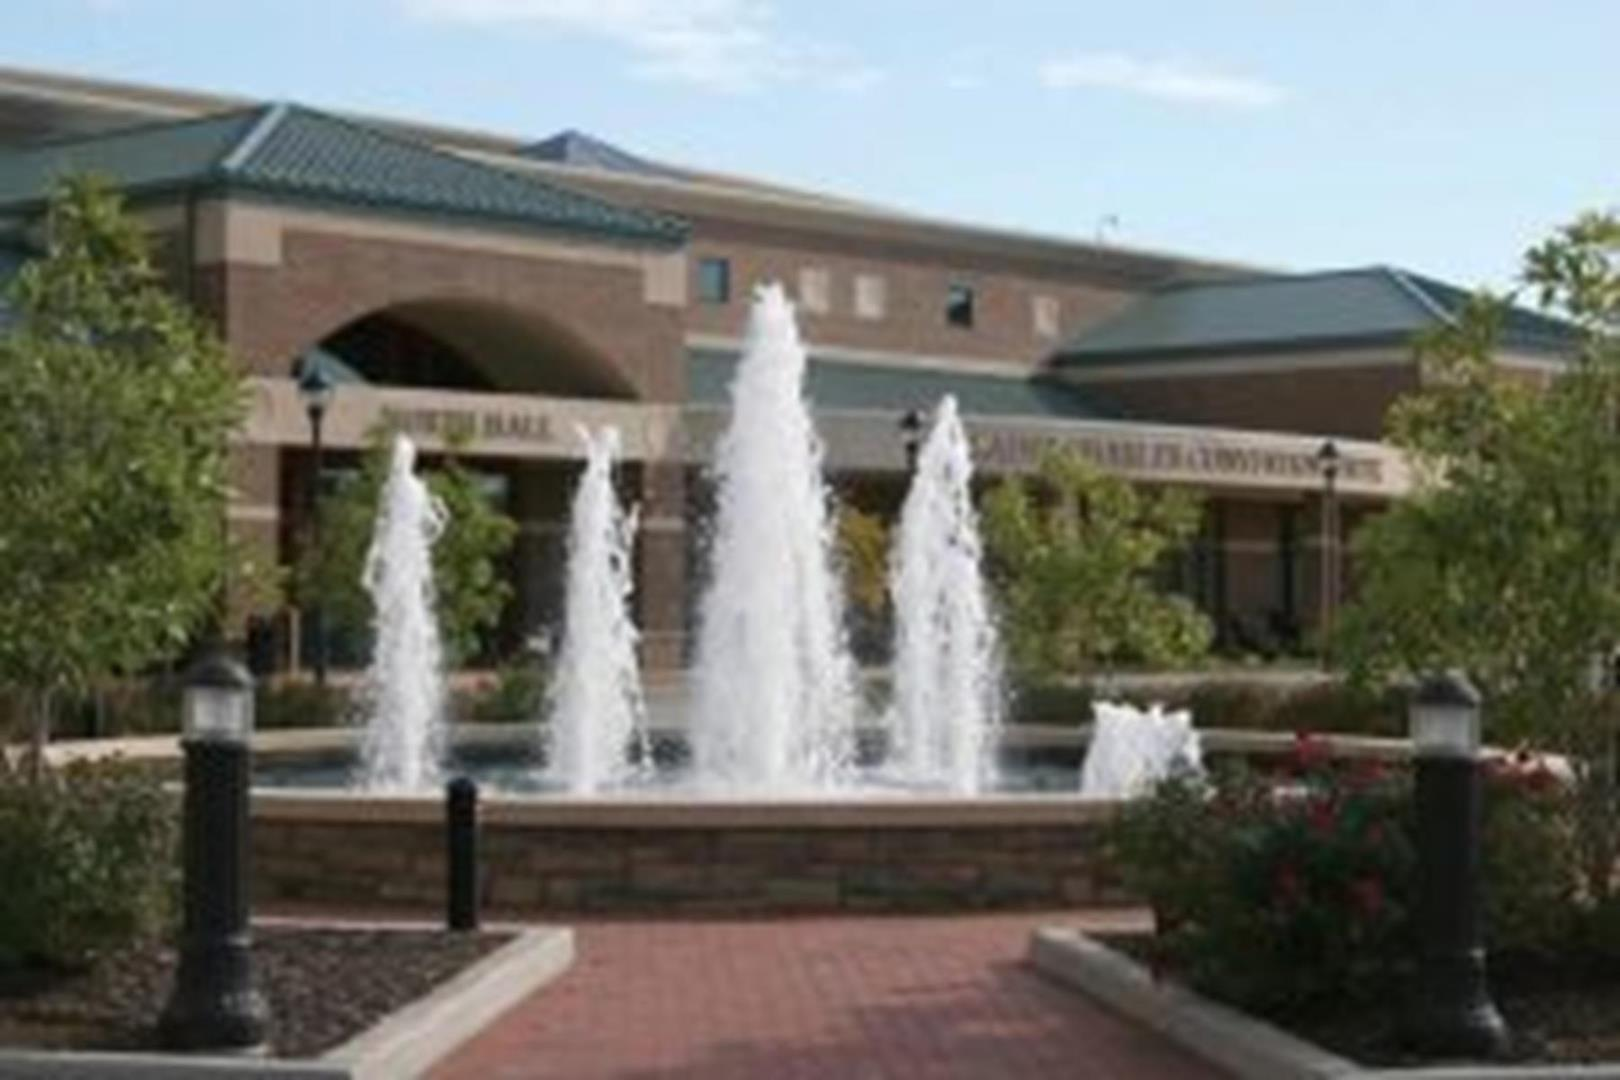 The Saint Charles Convention Center hosts more than 400 events each year